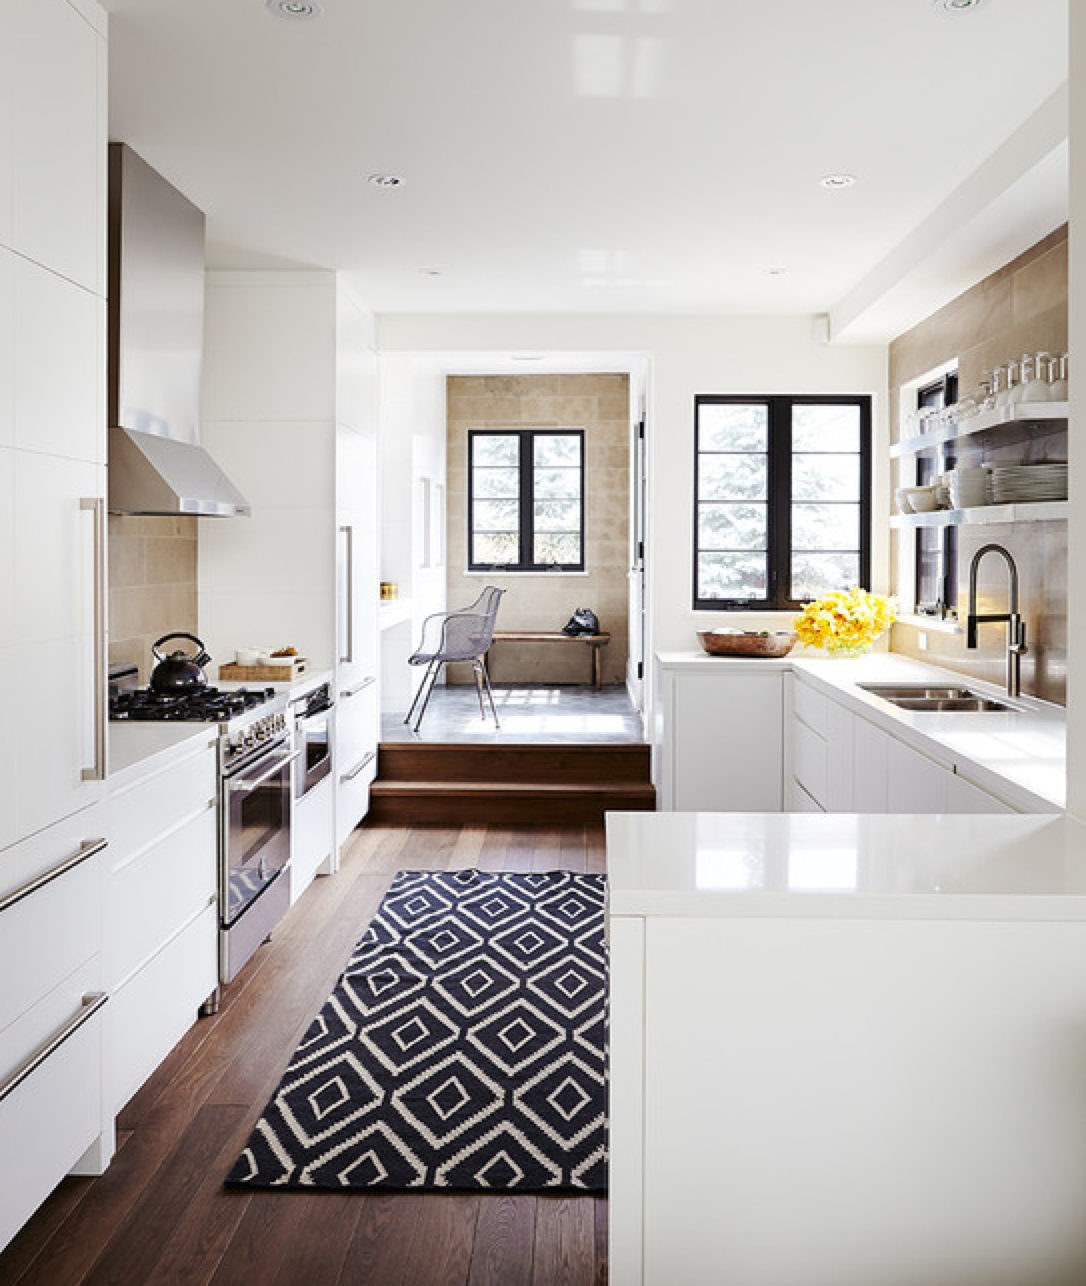 Kitchen step-up level to dining or whatever | Decorate {Kitchens ...